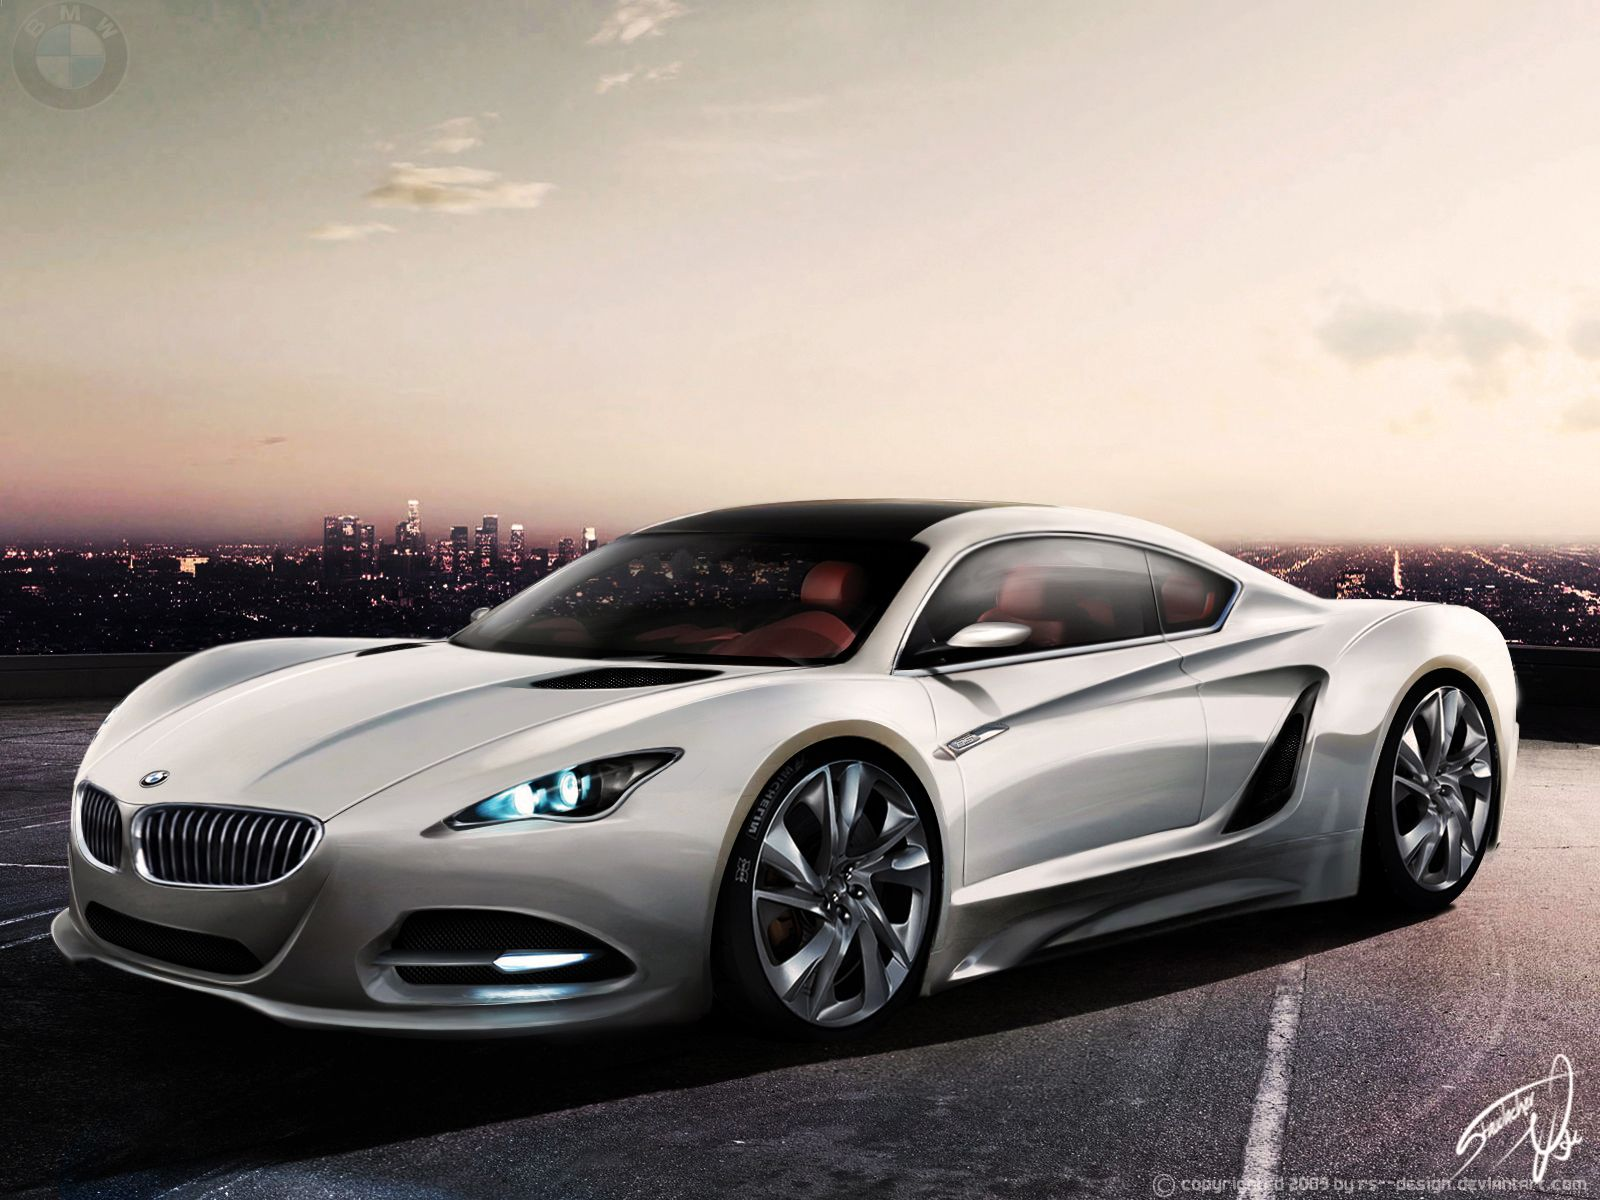 Concept car magazine cool car wallpapers - Concept Car Wallpapers For Desktop